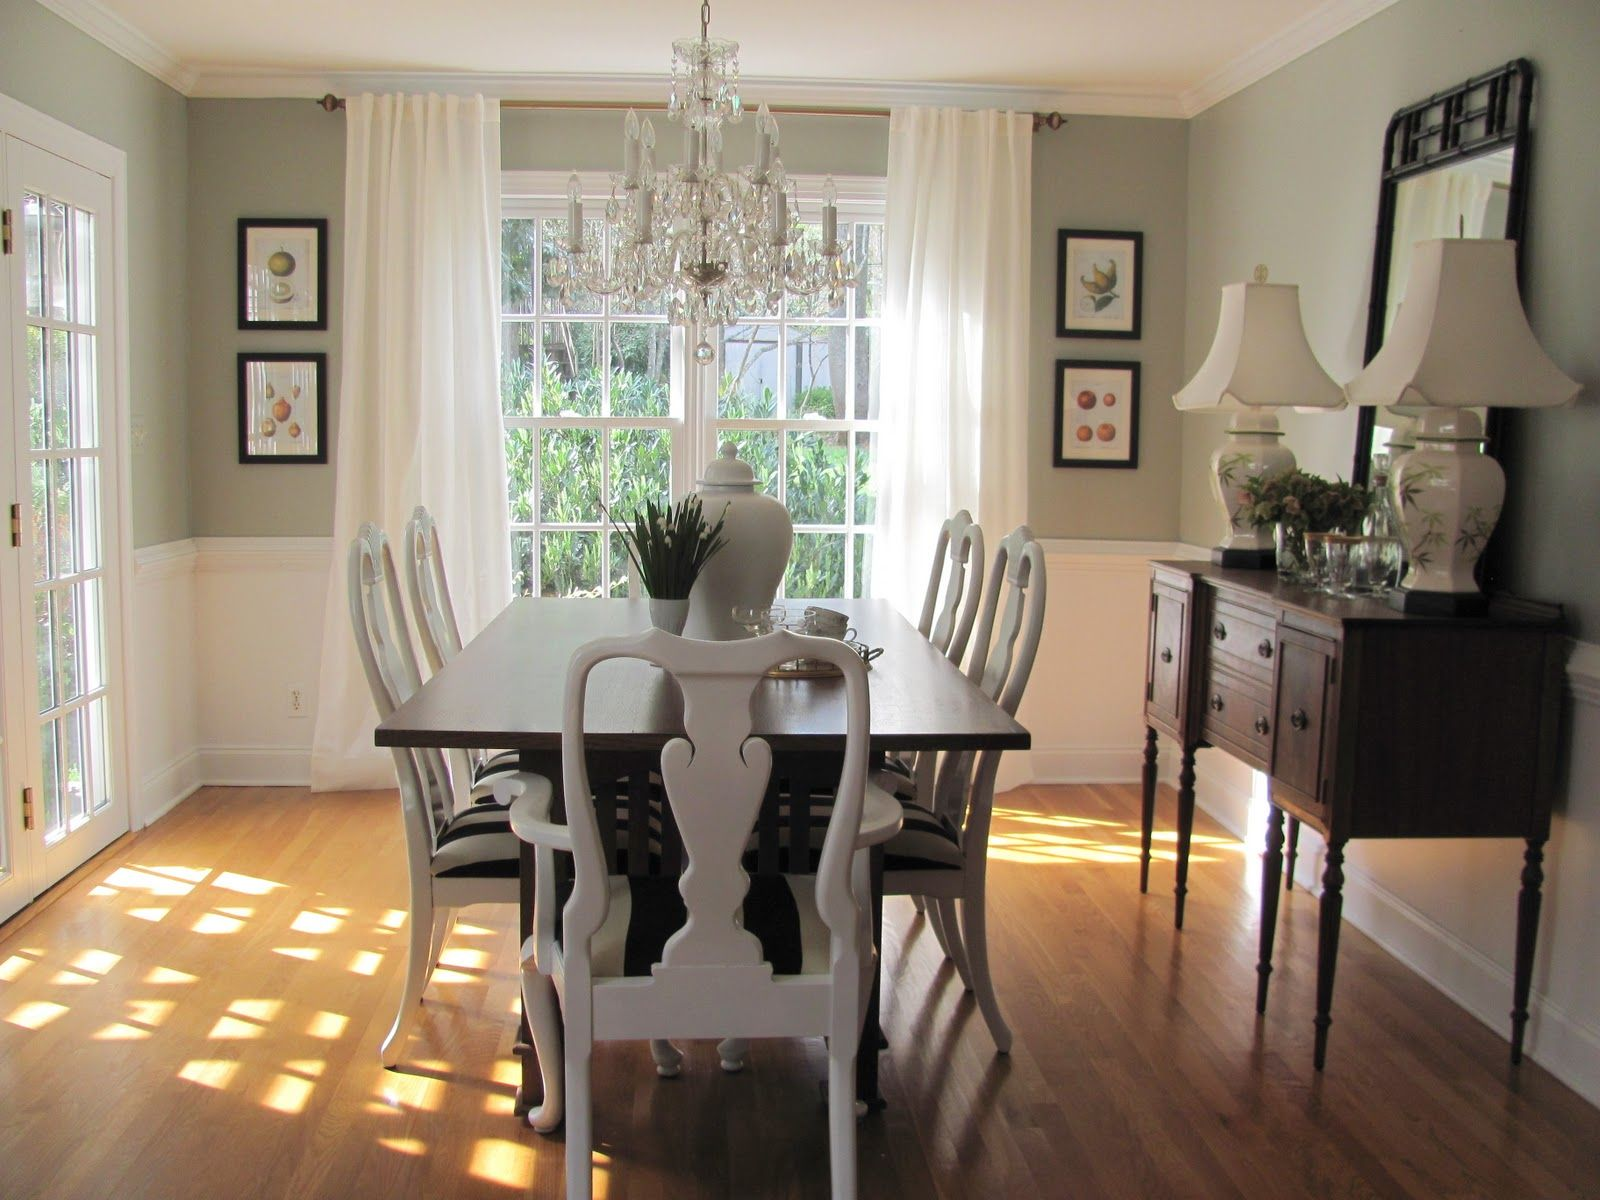 Painting Dining Room Style Endearing Dining Room Paint Colors With Chair Rail  Google Search  Forever . Inspiration Design